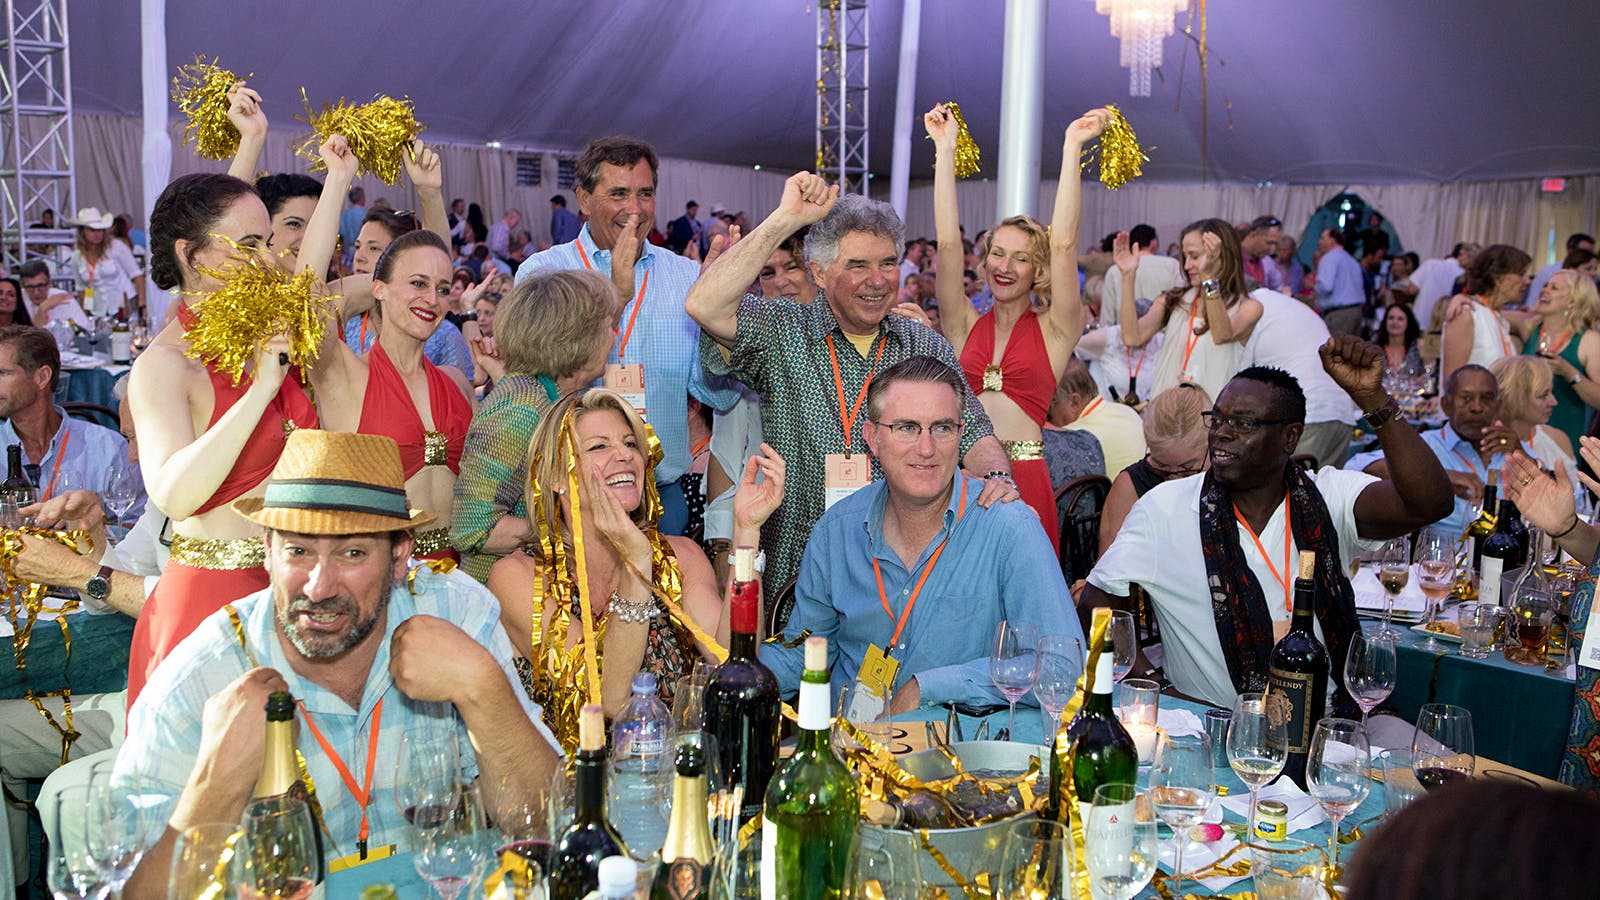 Boasting a Star-Studded Cast and Great Wines, Auction Napa Valley Raises $15.7 Million